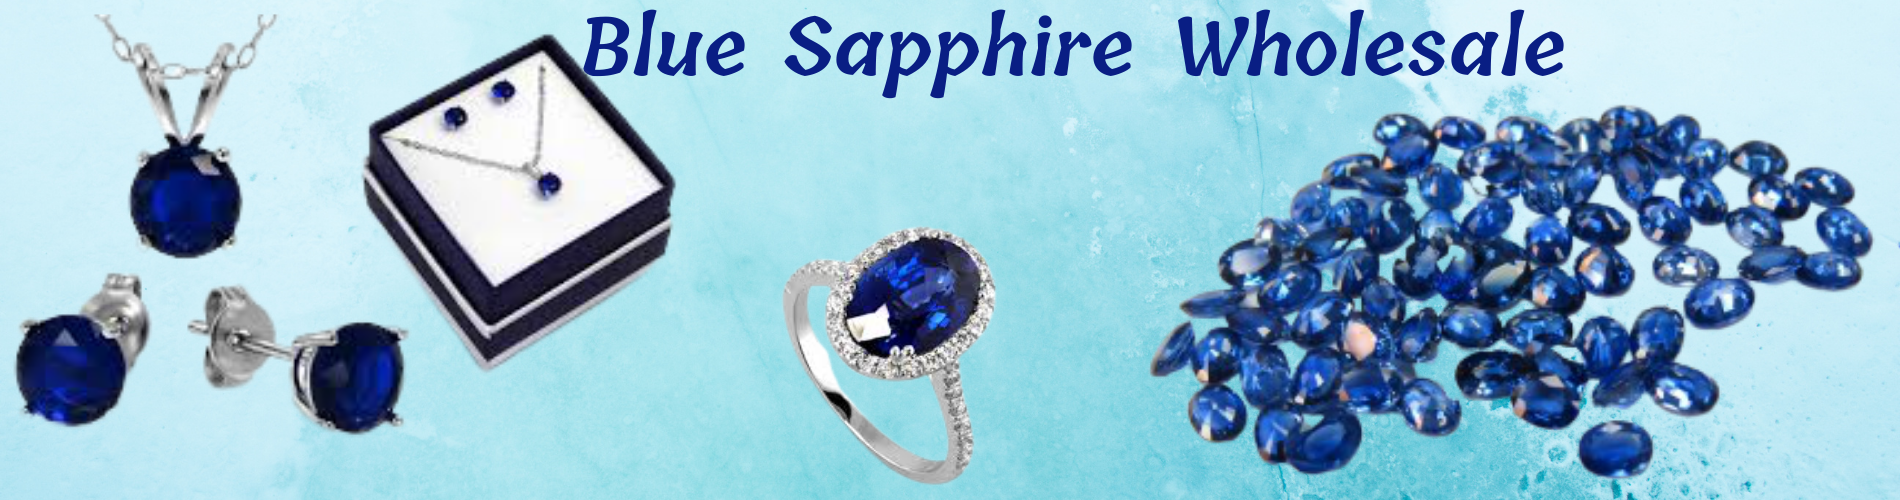 Best Blue Sapphire Wholesaler | Supplier | Delhi (India)